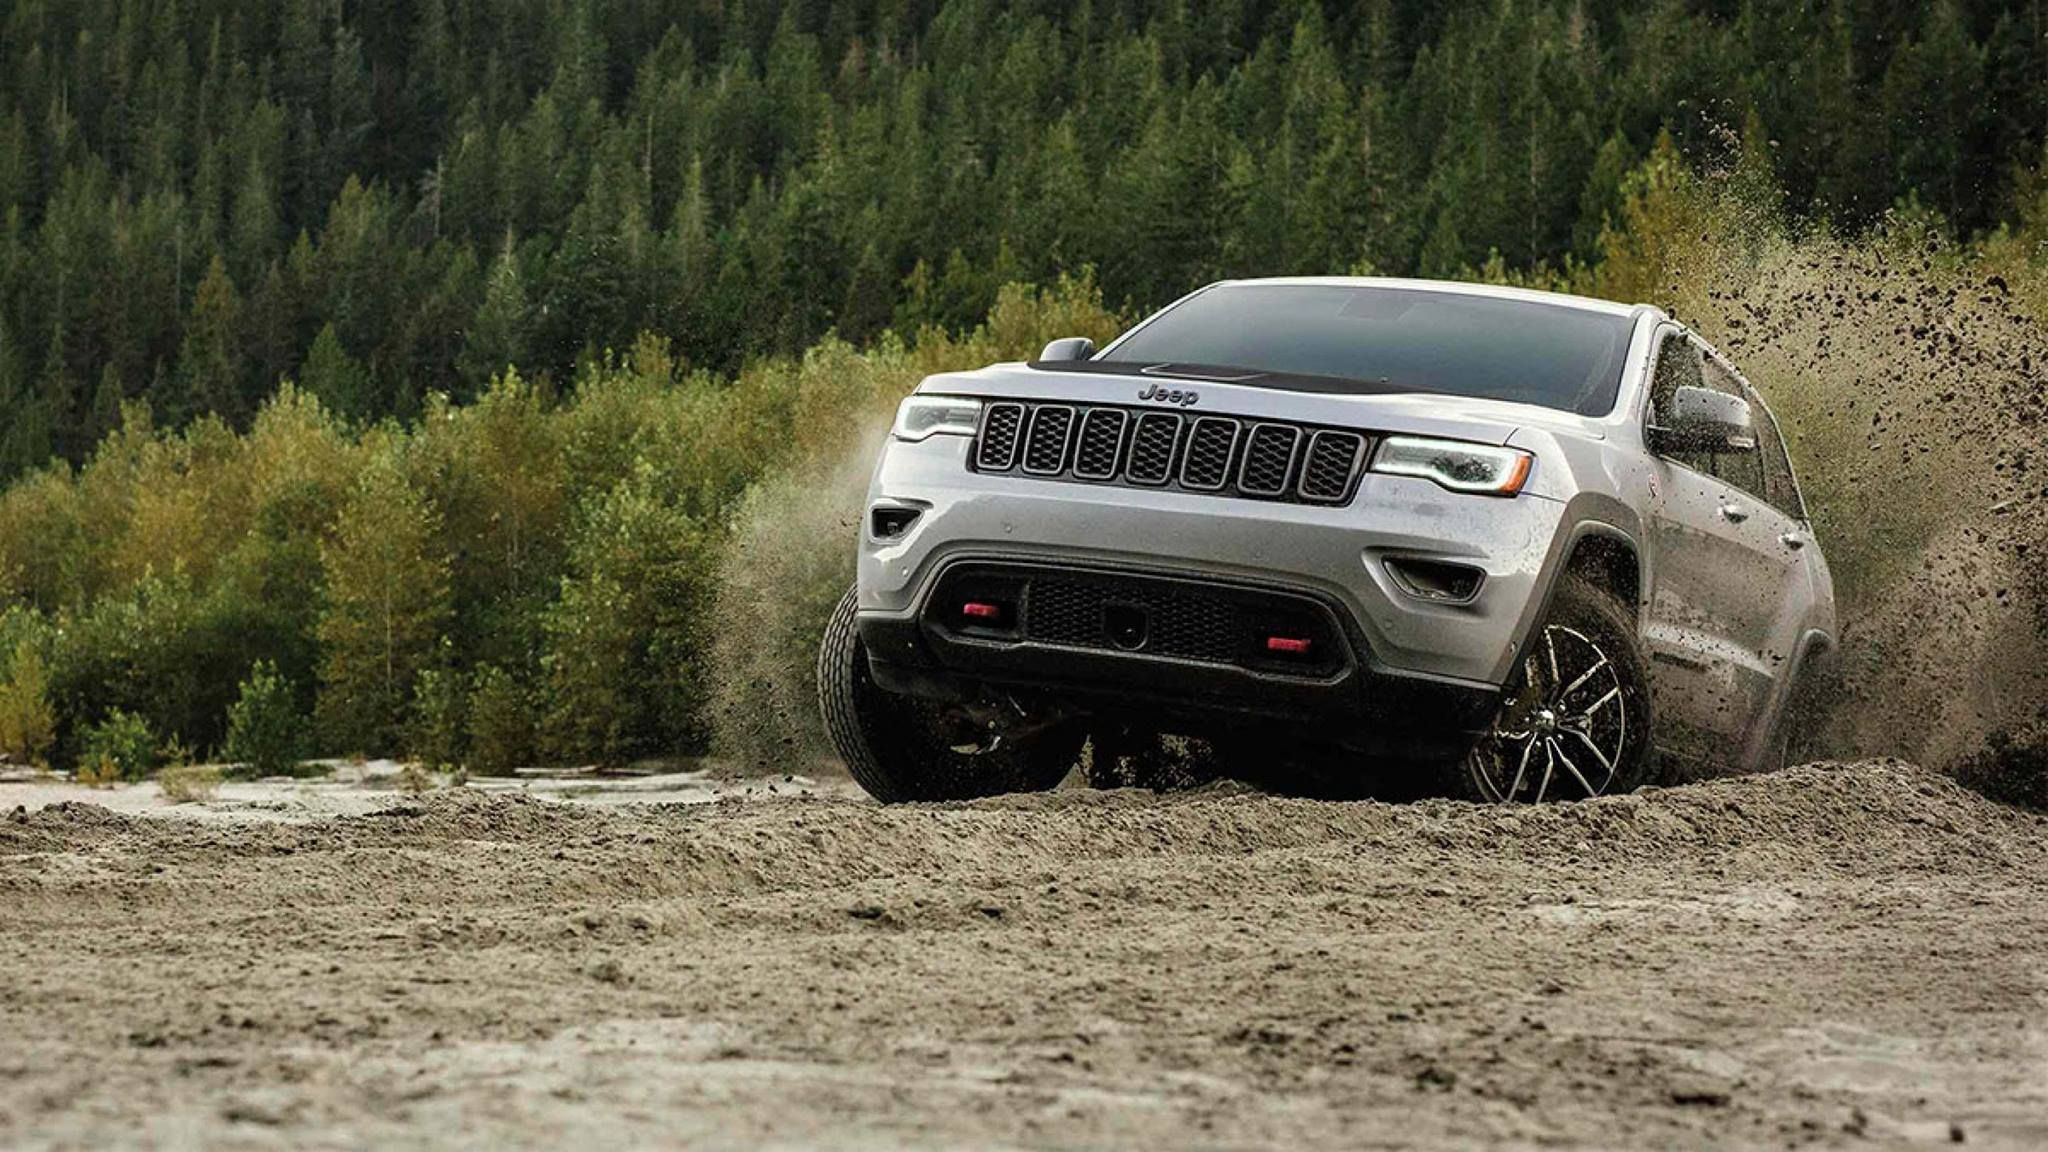 The Jeep Grand Cherokee Trailhawk A True Offroad Machine Best Small Suv Jeep Grand Cheap Used Cars